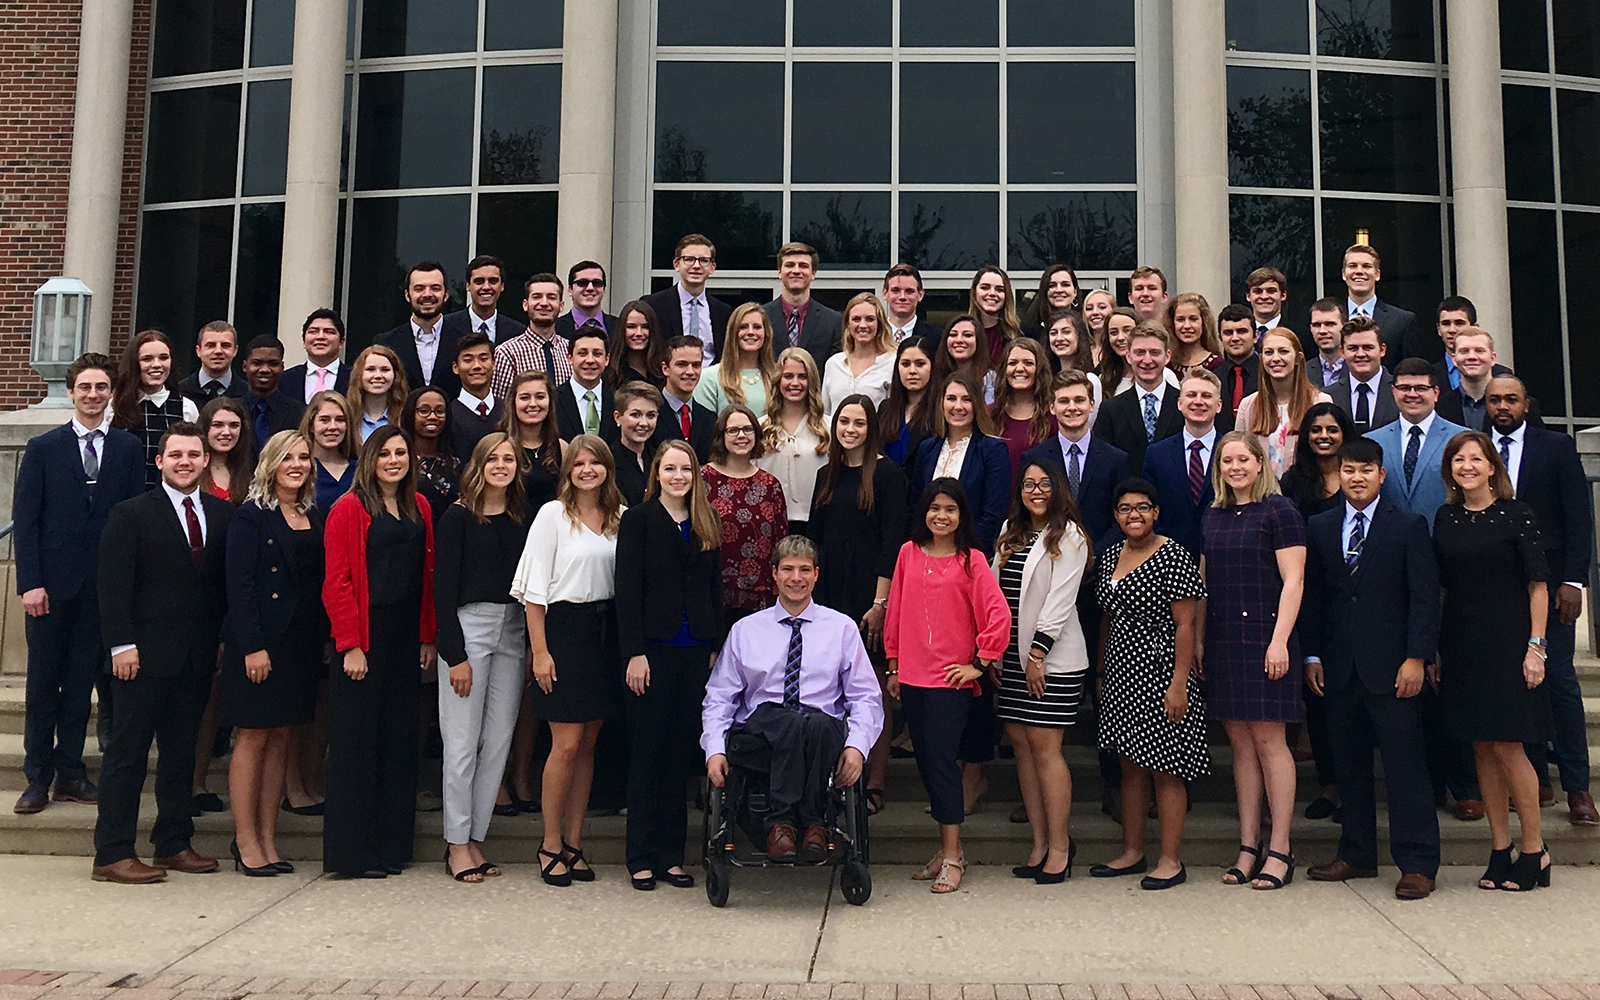 Olivet_mcgraw_school_business_competition_enactus_student_leadership_web3.jpg